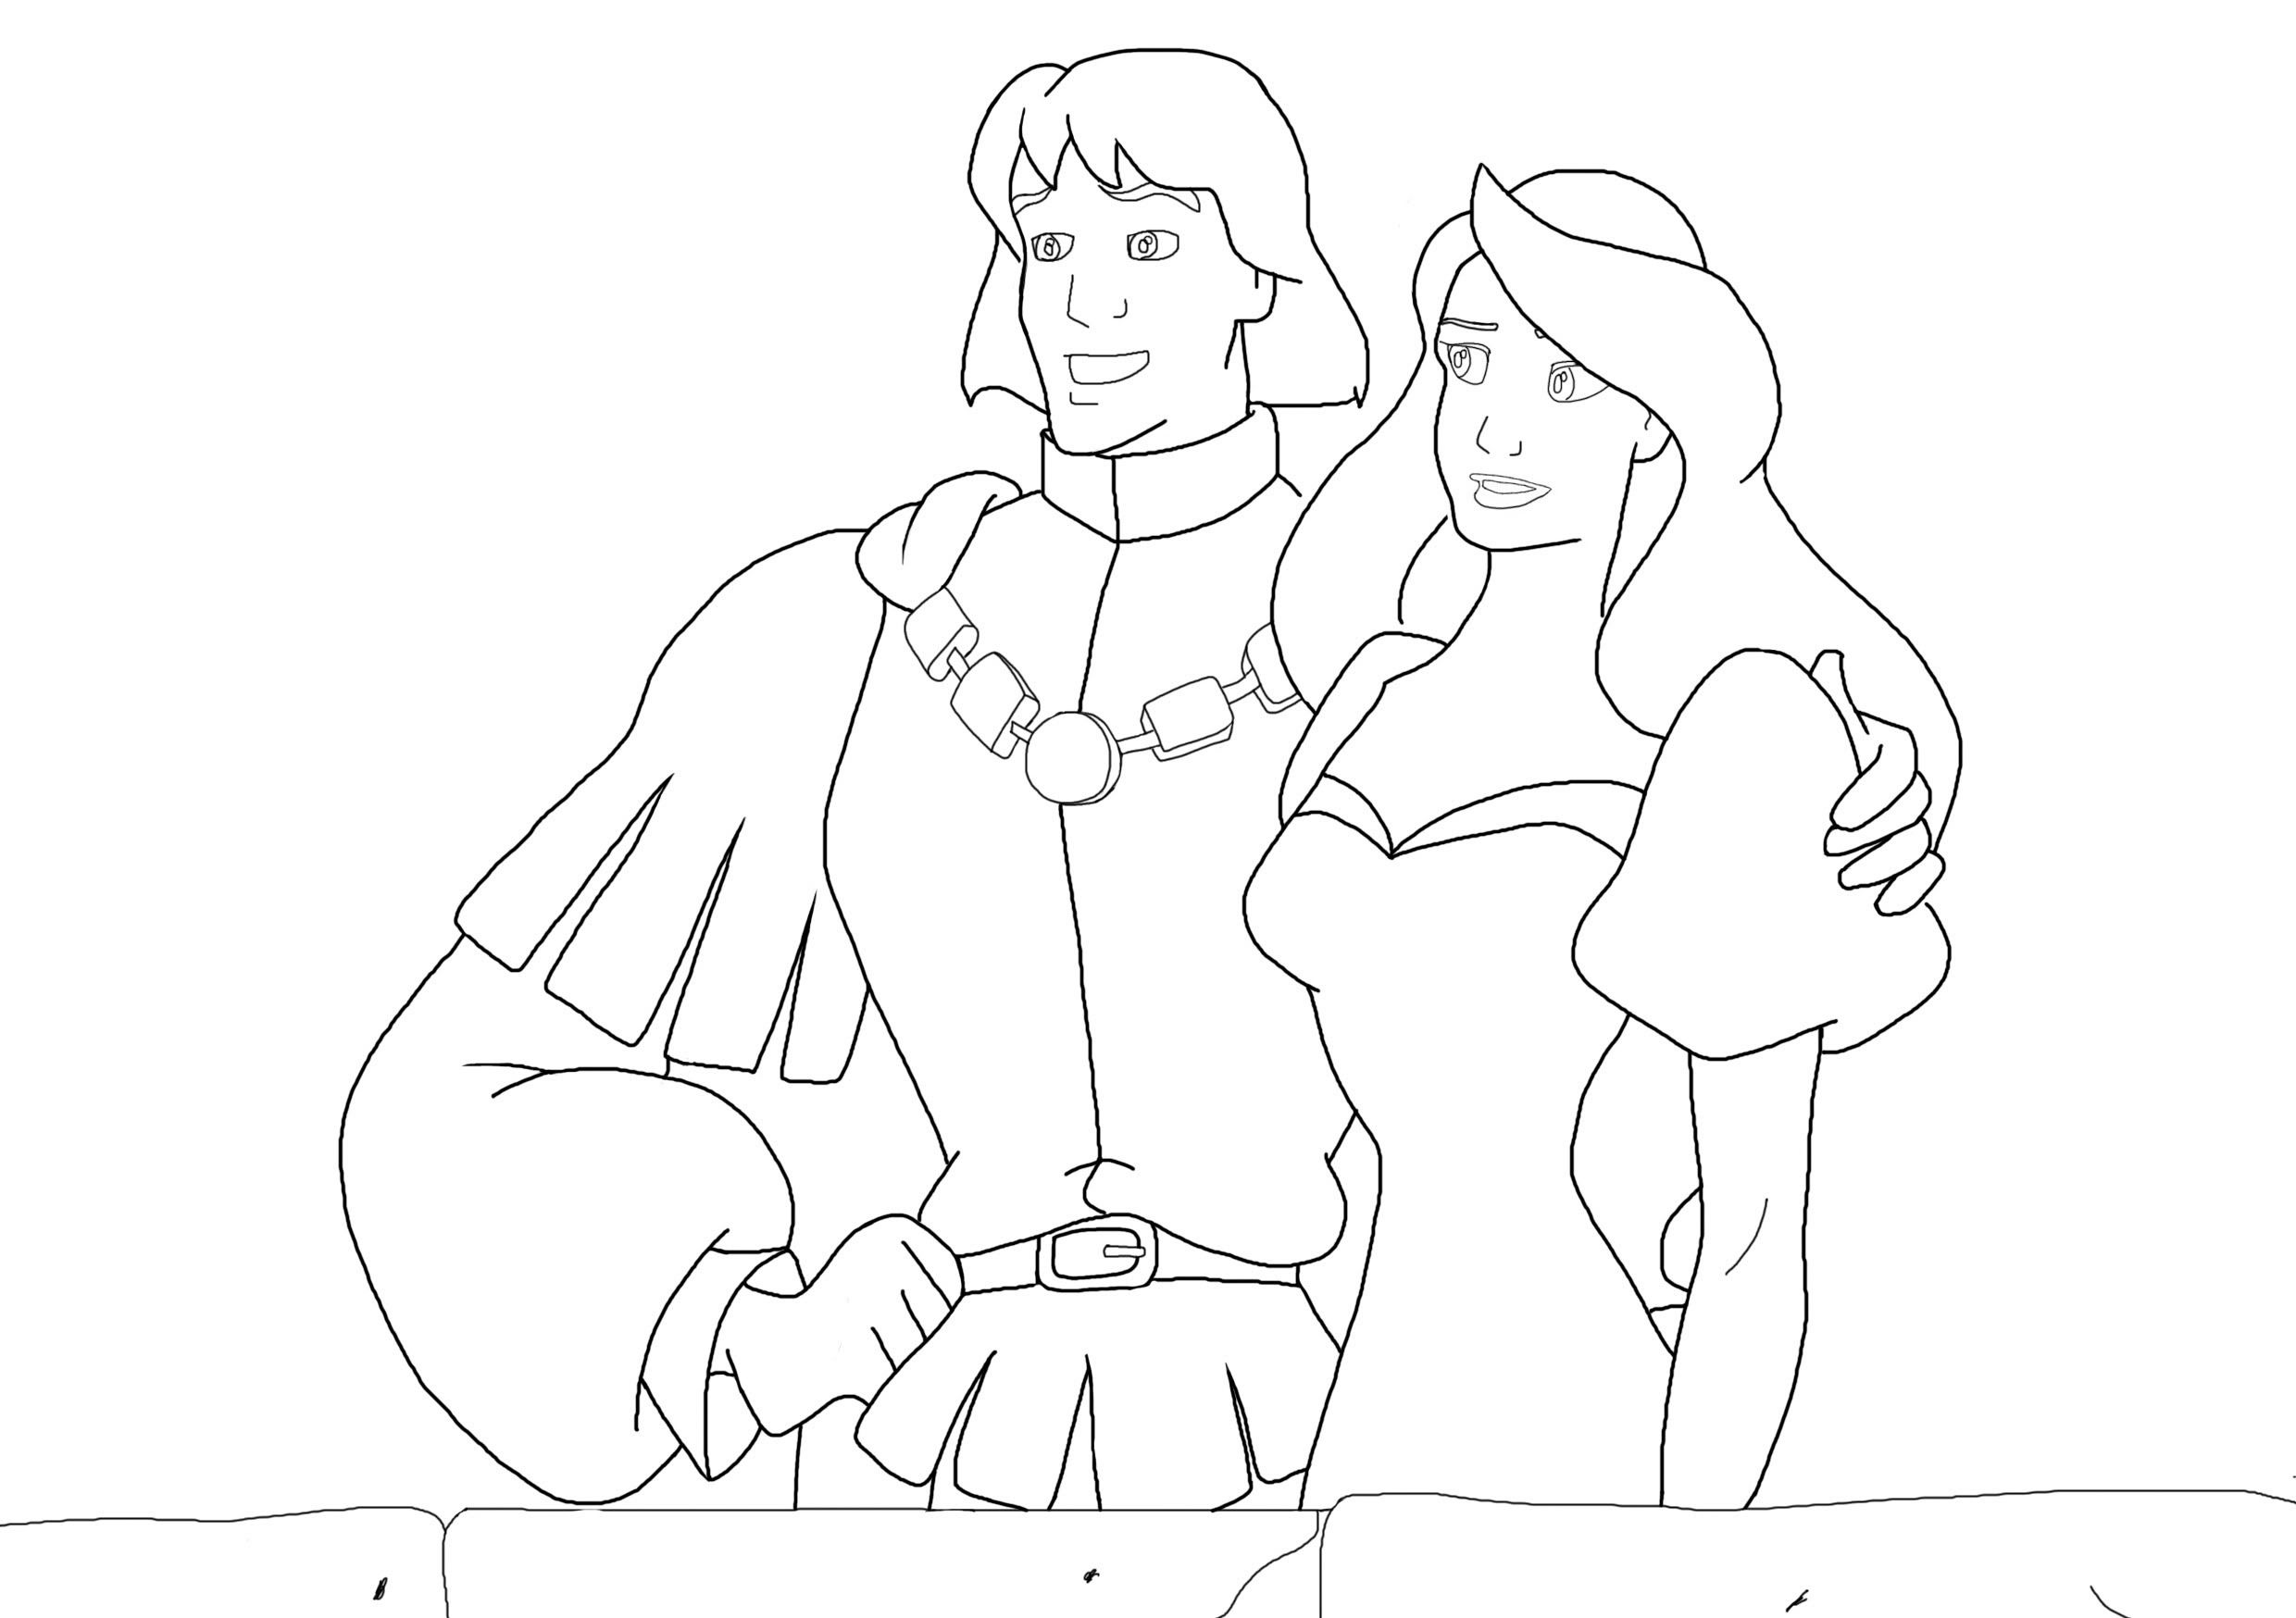 Swan princess coloring pages - Swan Princess Coloring Pages For Kids And For Adults